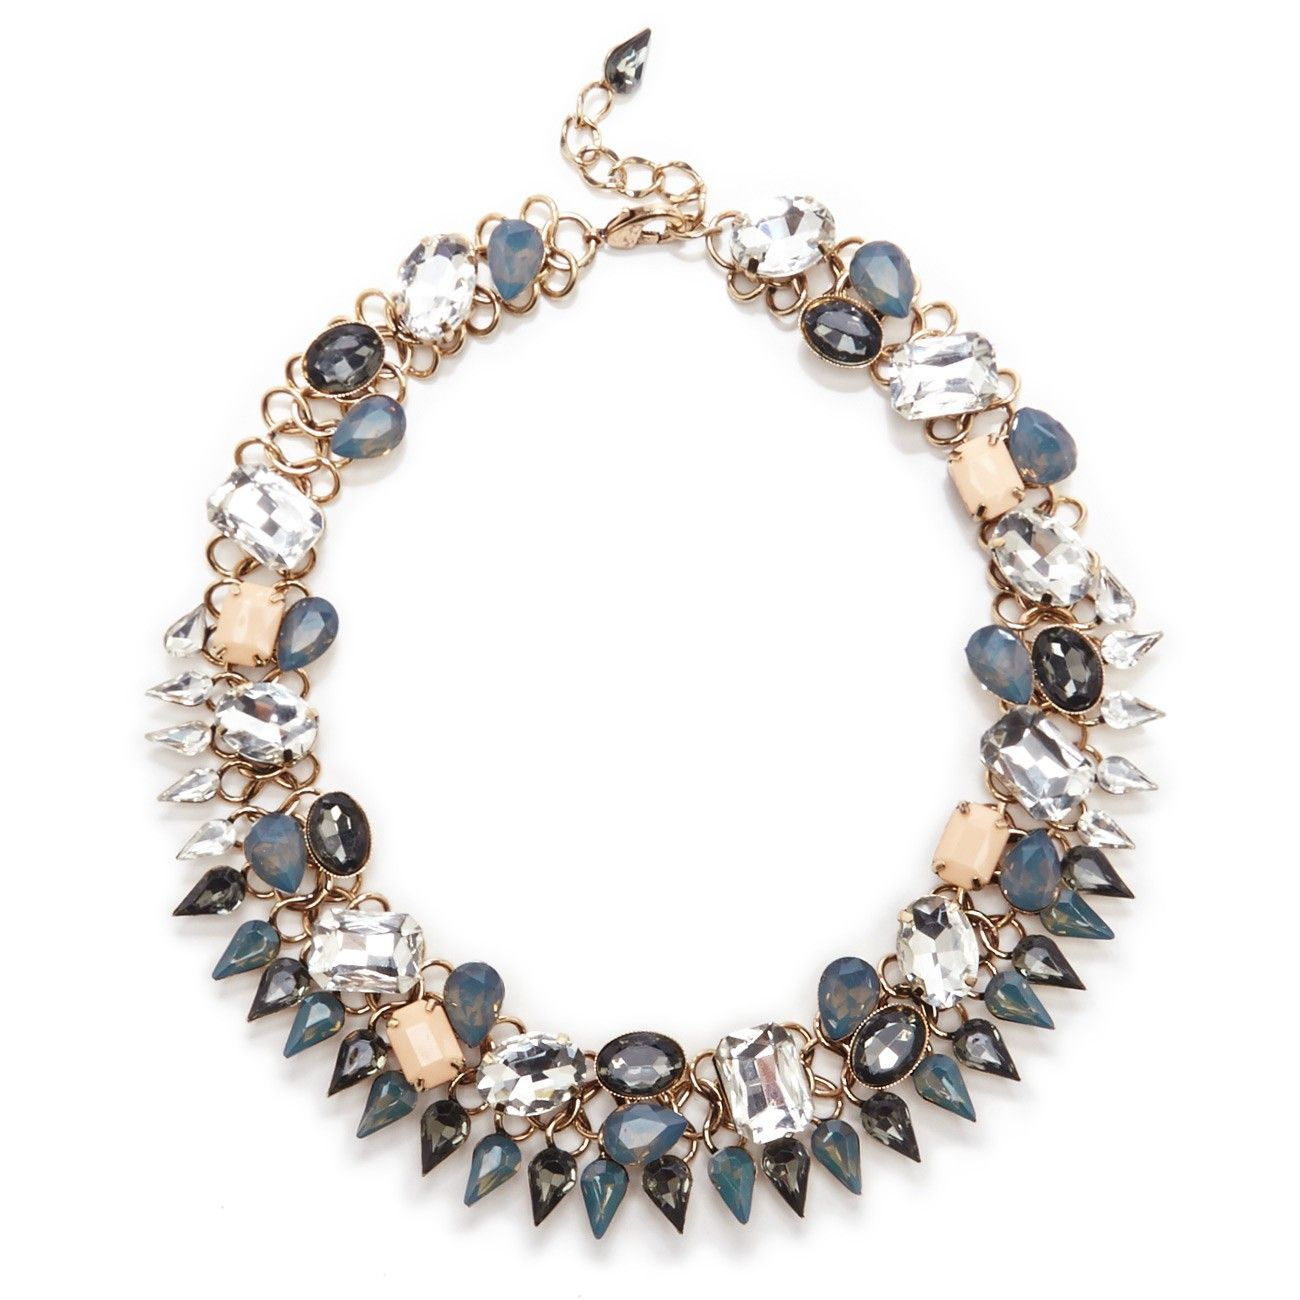 Sole Society Crystal And Stone Statement Collar | Sole Society Shoes, Bags and Accessories